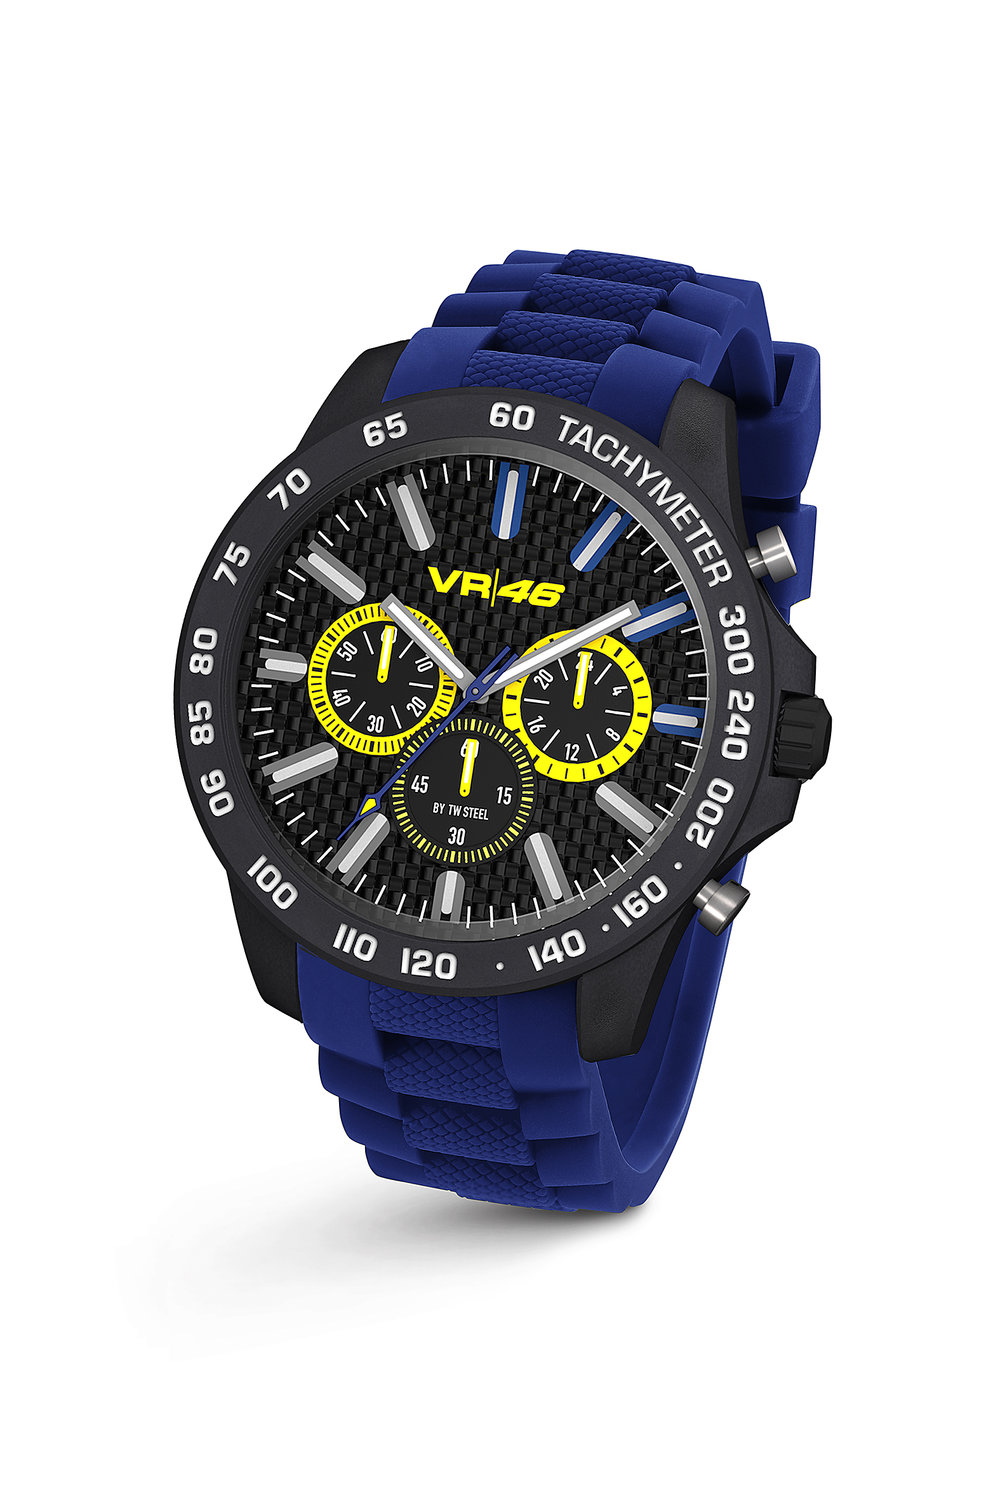 tw-steel-vr46-watch_scorpio-worldwide_travel-retail-distributor